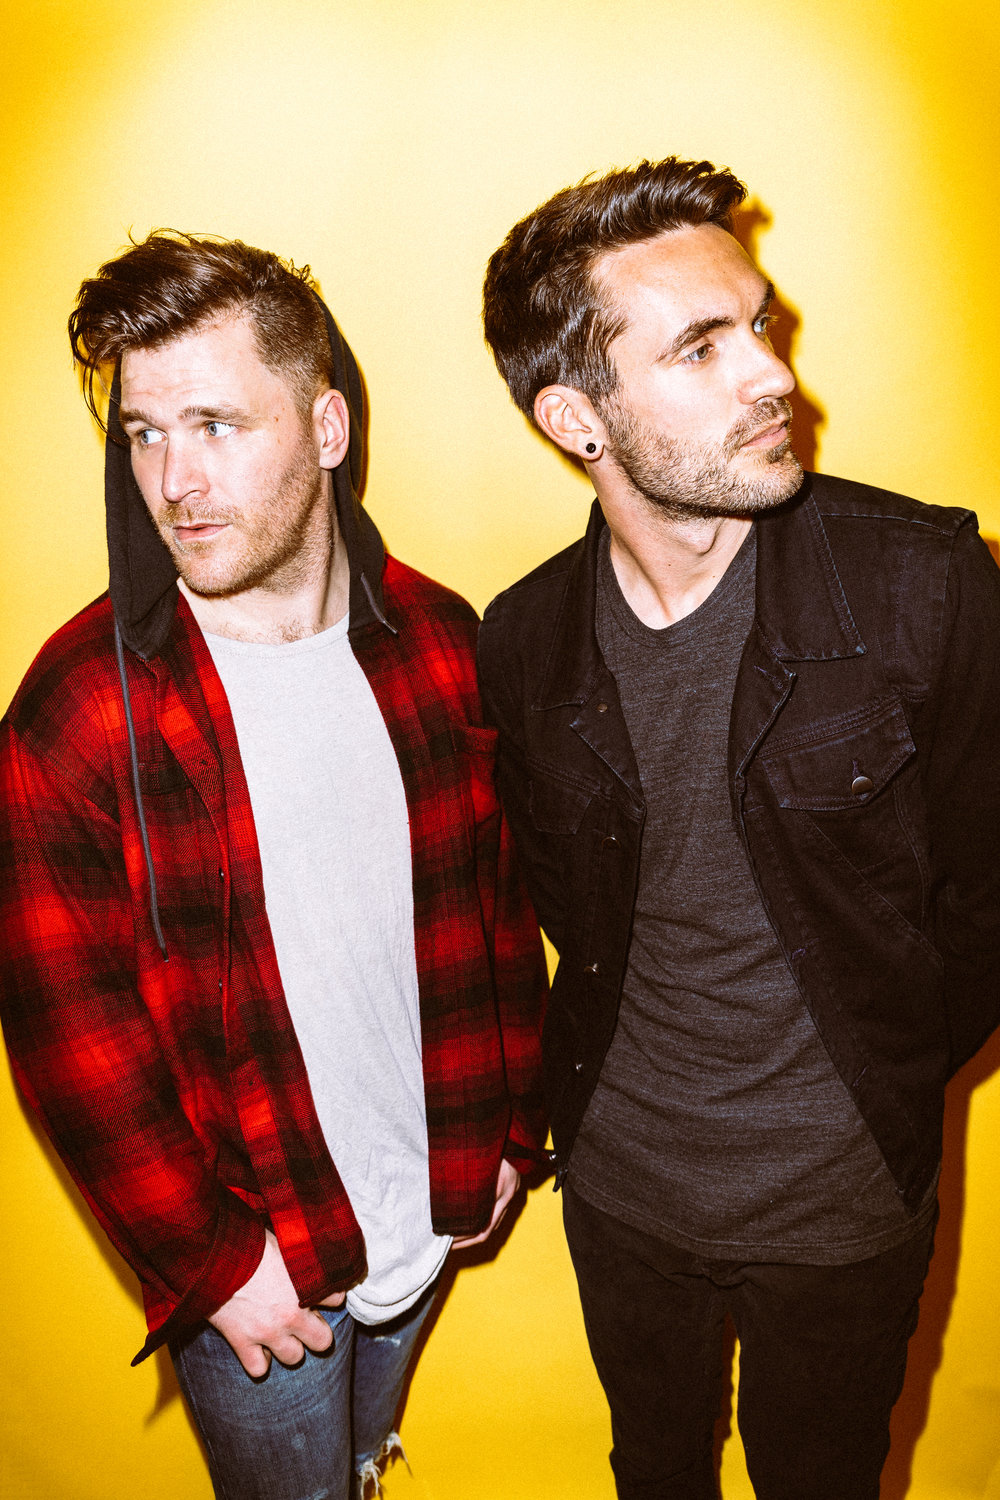 Ryan Lafferty & Charlie Maynard of Fare -